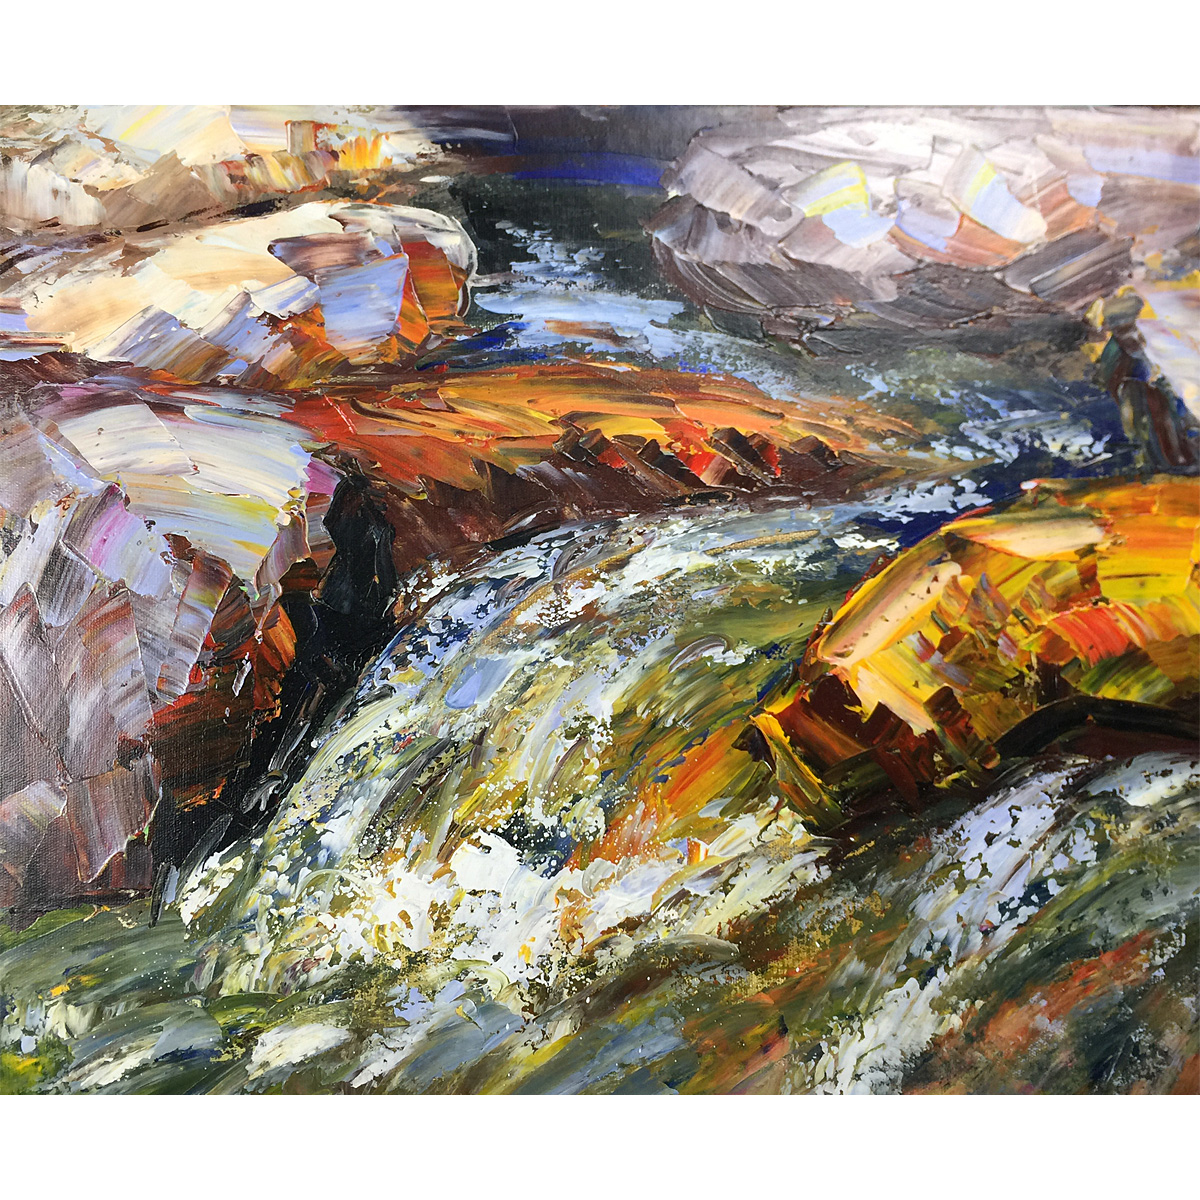 Abstract Landscape Painting Hand Painted Oil Painting Stone in the Stream Scenery Wall Art On Canvas